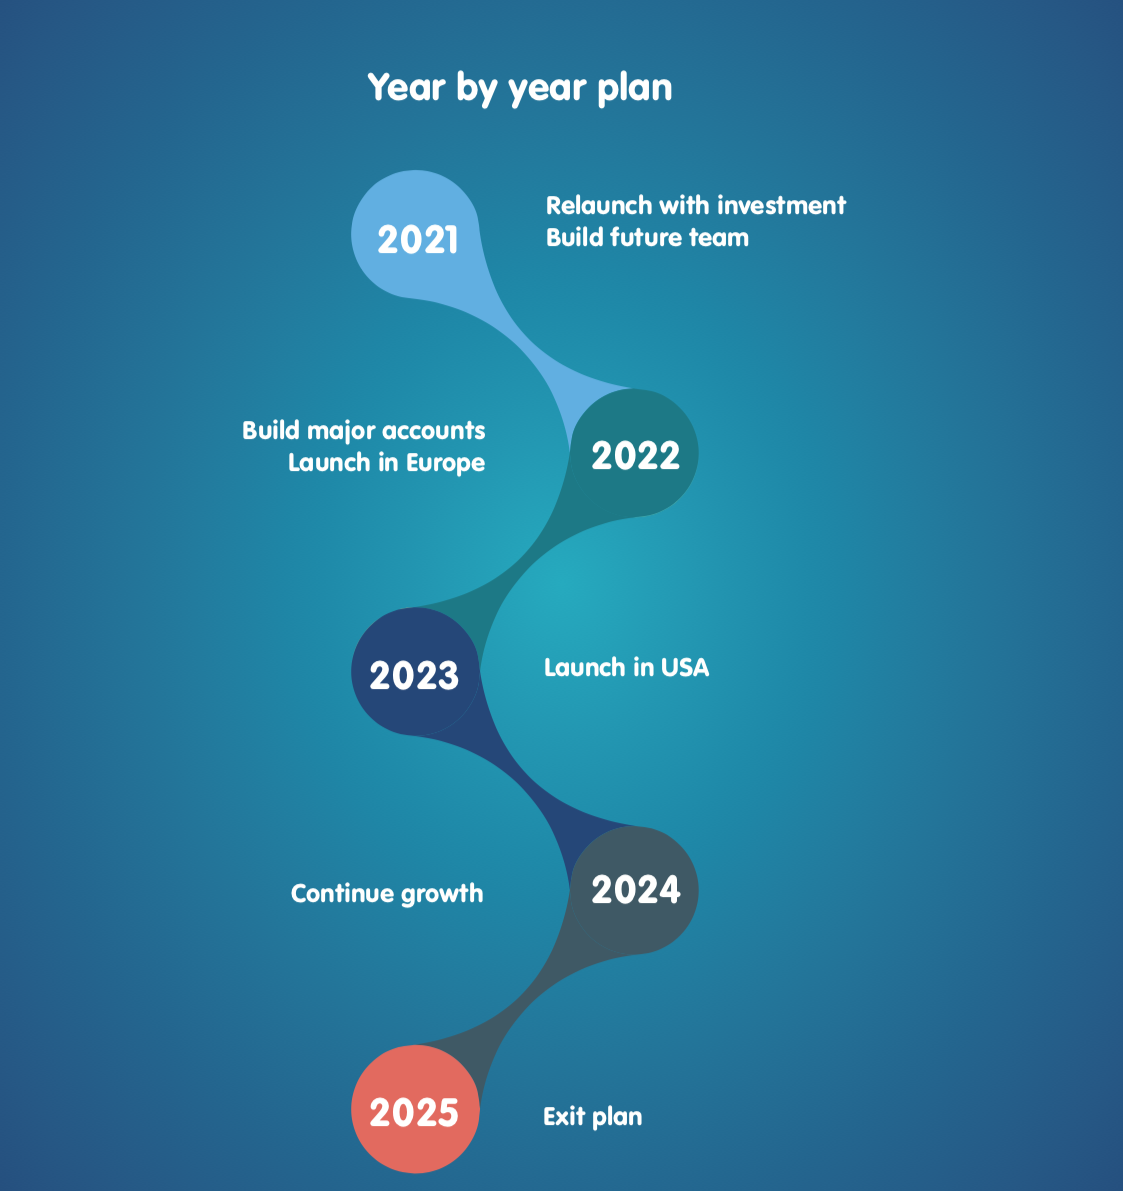 Our 5 year plan for investors